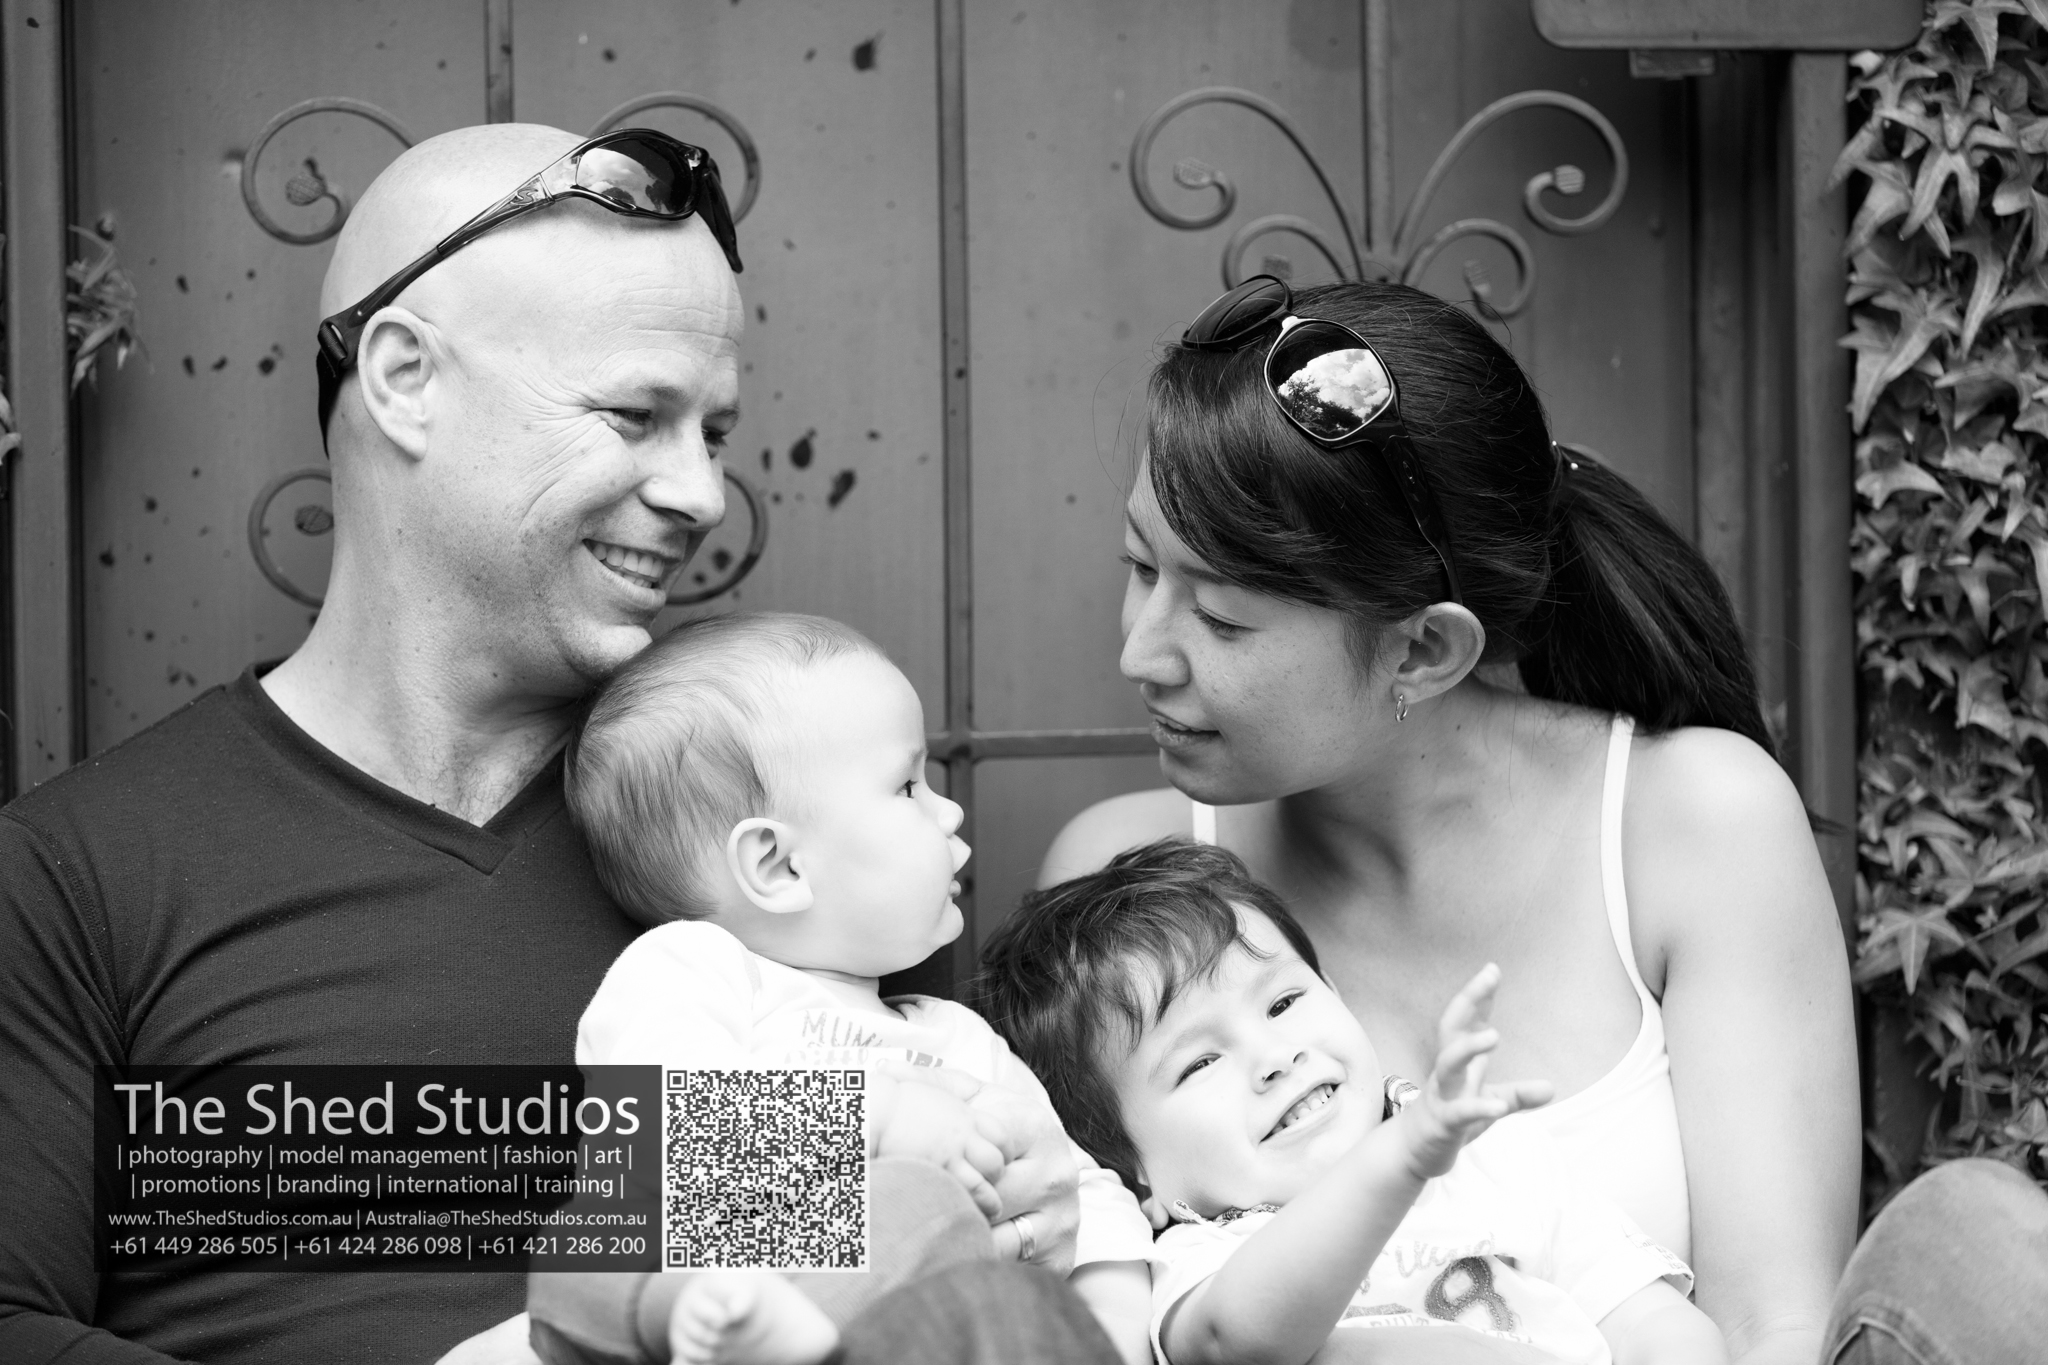 The M Family by BK @ The Shed Studios